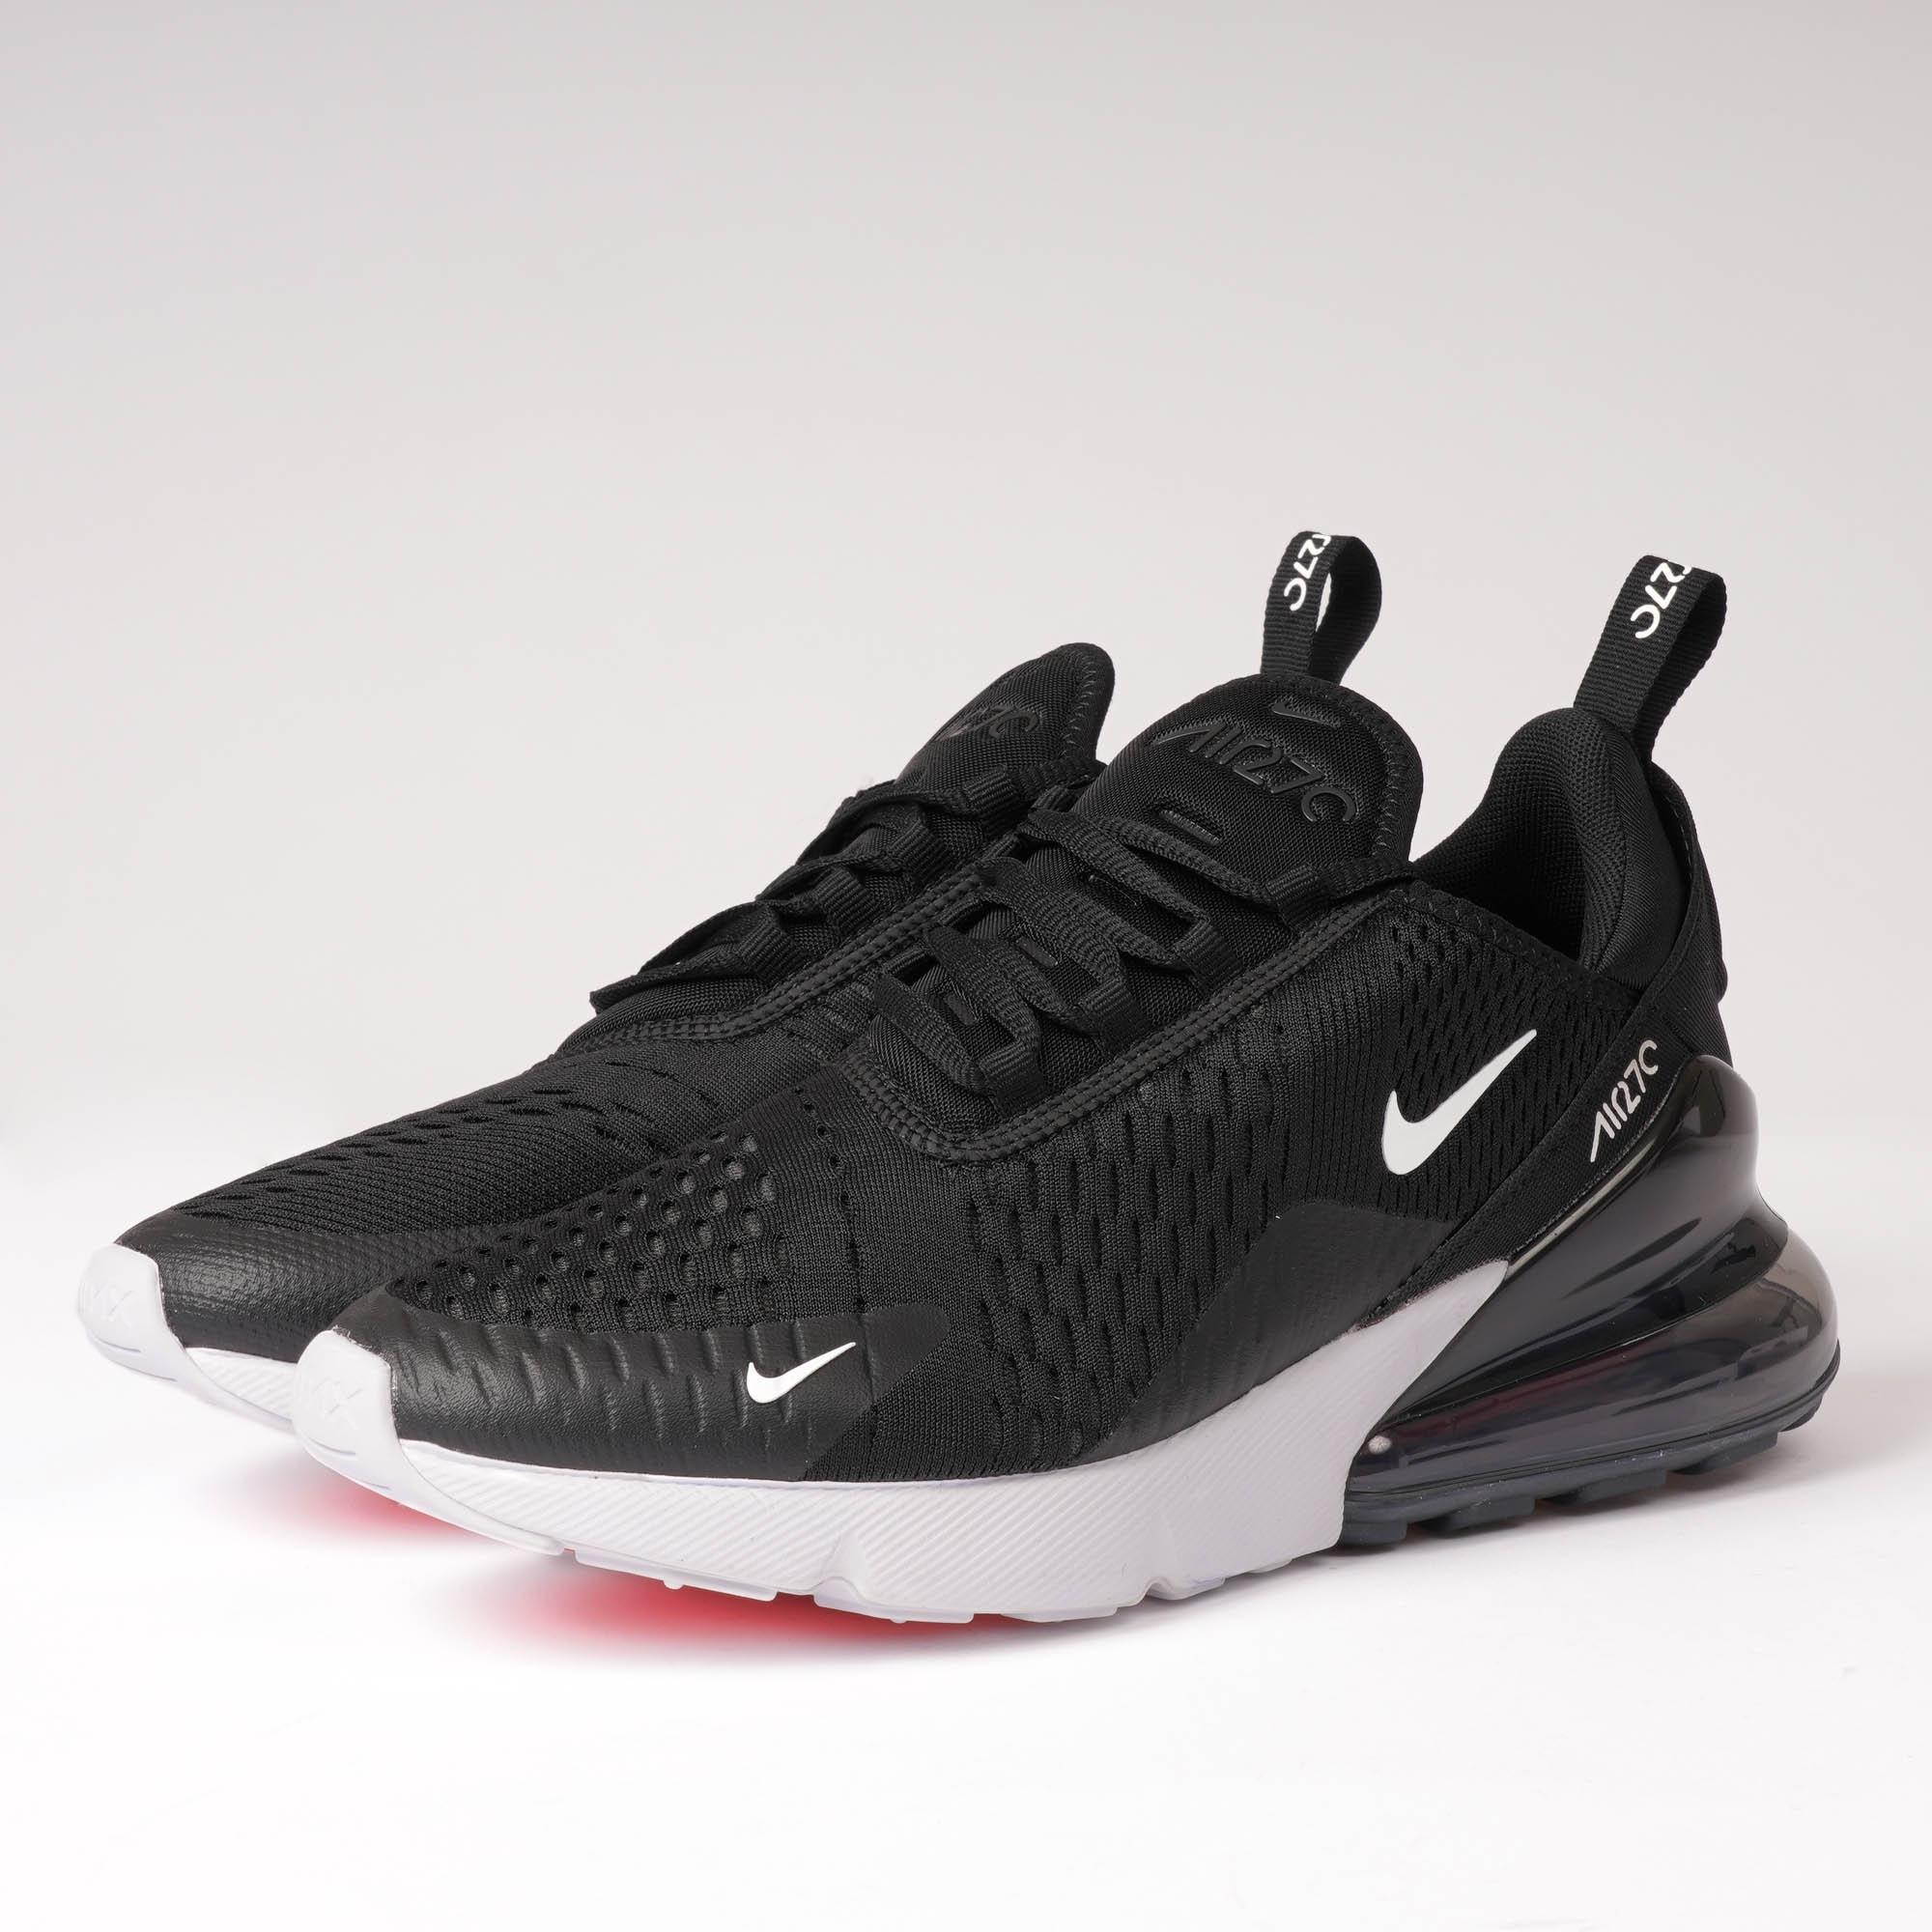 the latest dfab5 5146e Lyst - Nike Air Max 270 - Black, Anthracite   White in Black for Men